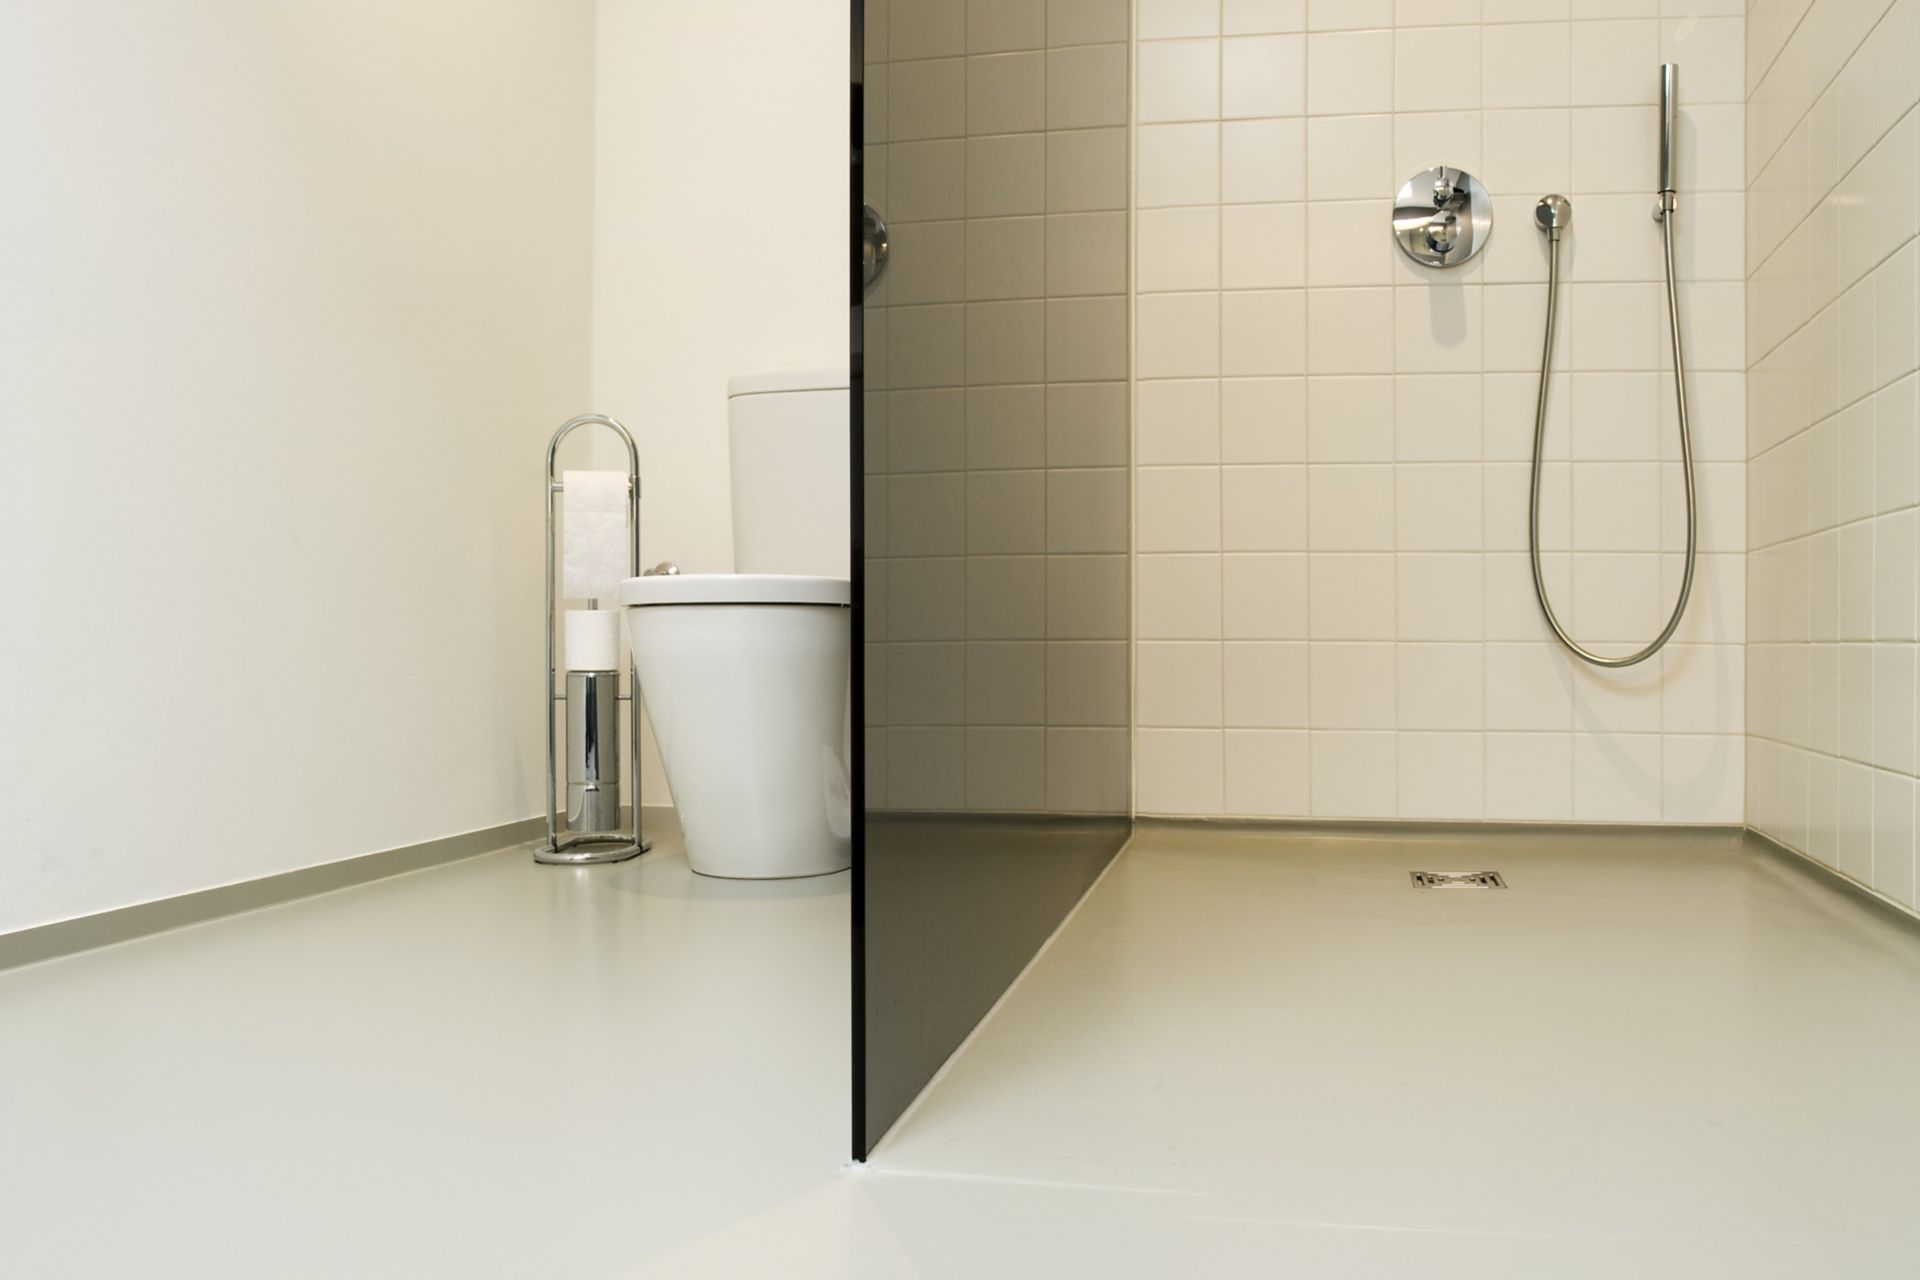 Sika ComfortFloor® grey floor in modern bathroom shower toilet